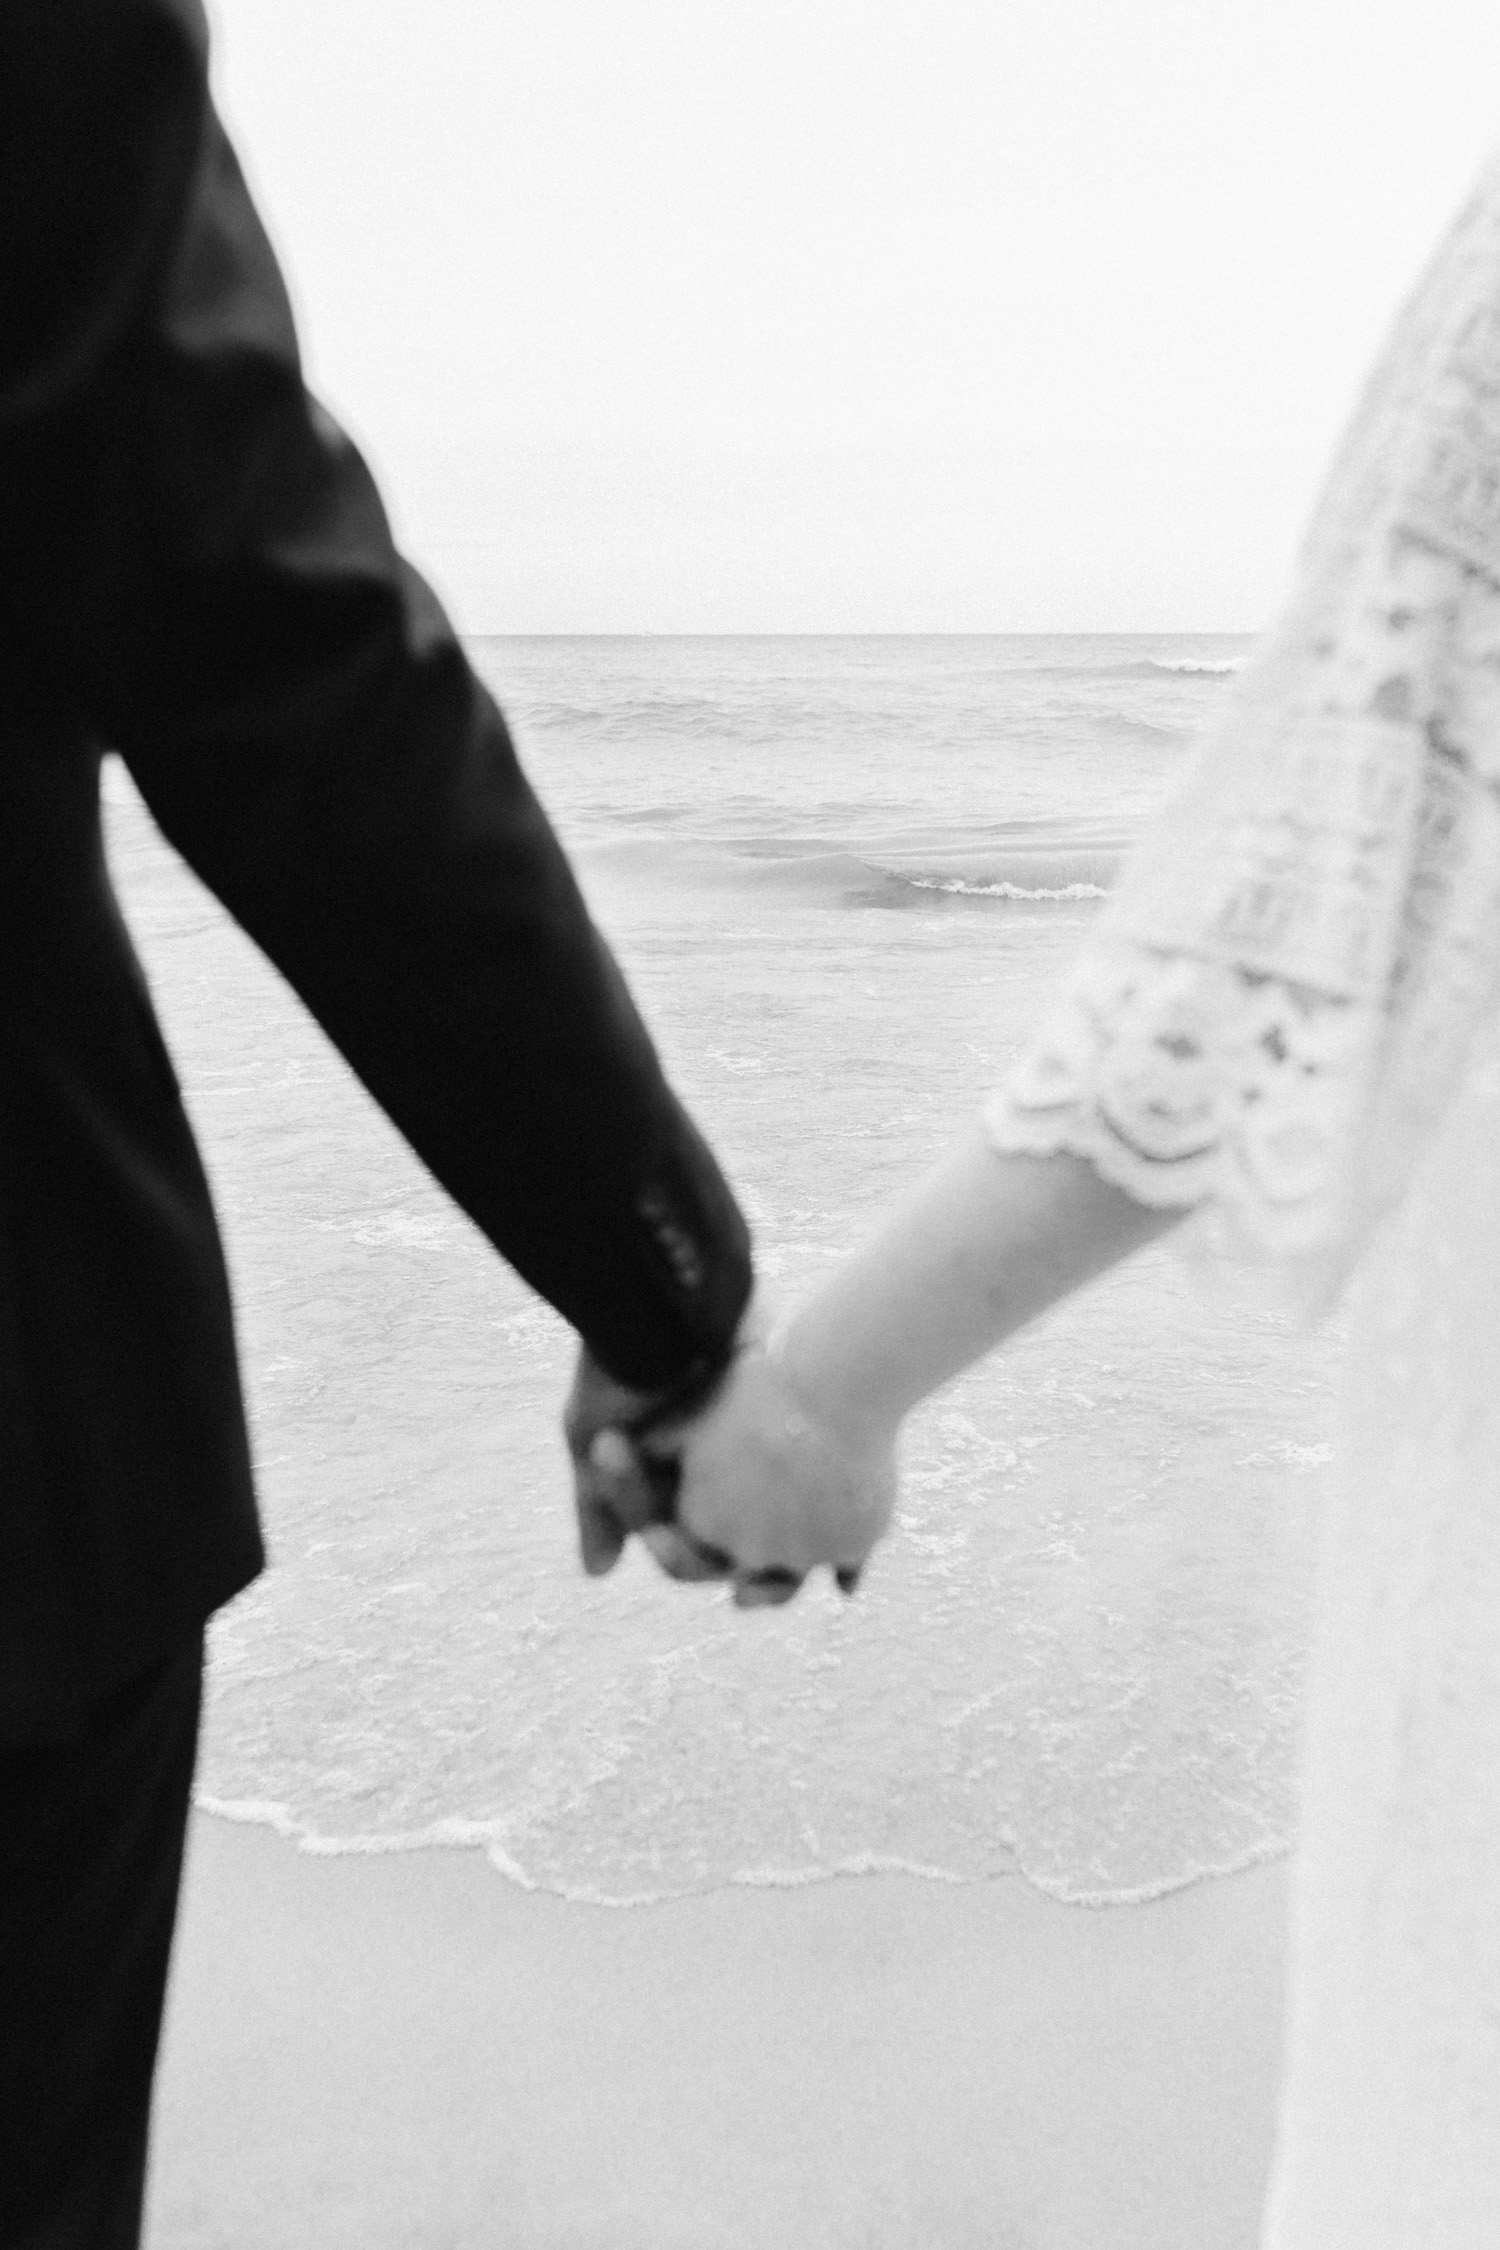 A bride and groom holding hands in front of the waves on a Lake Michigan beach, after their small wedding ceremony